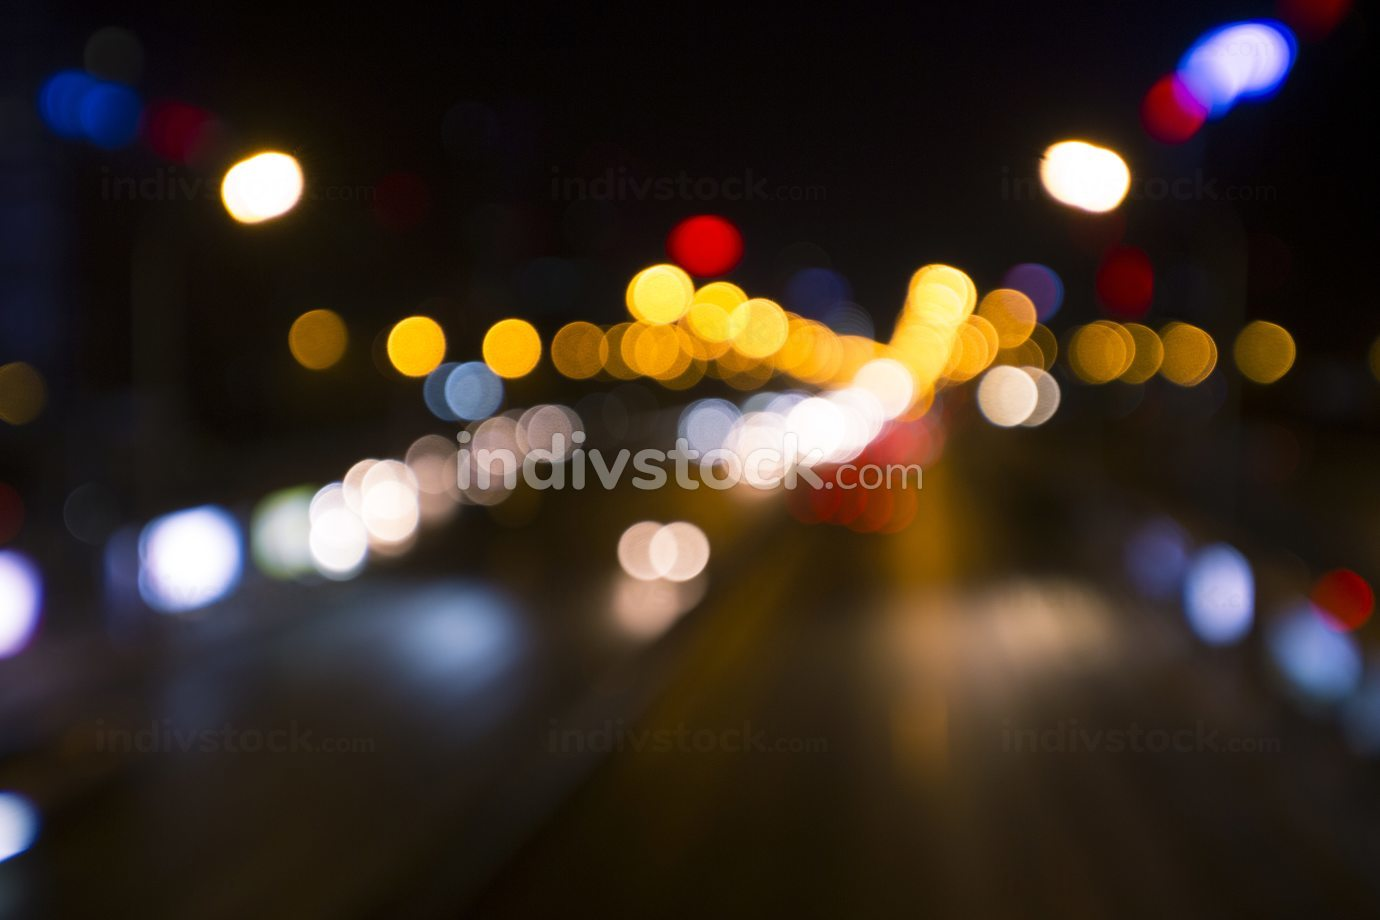 Out of focus lights at night